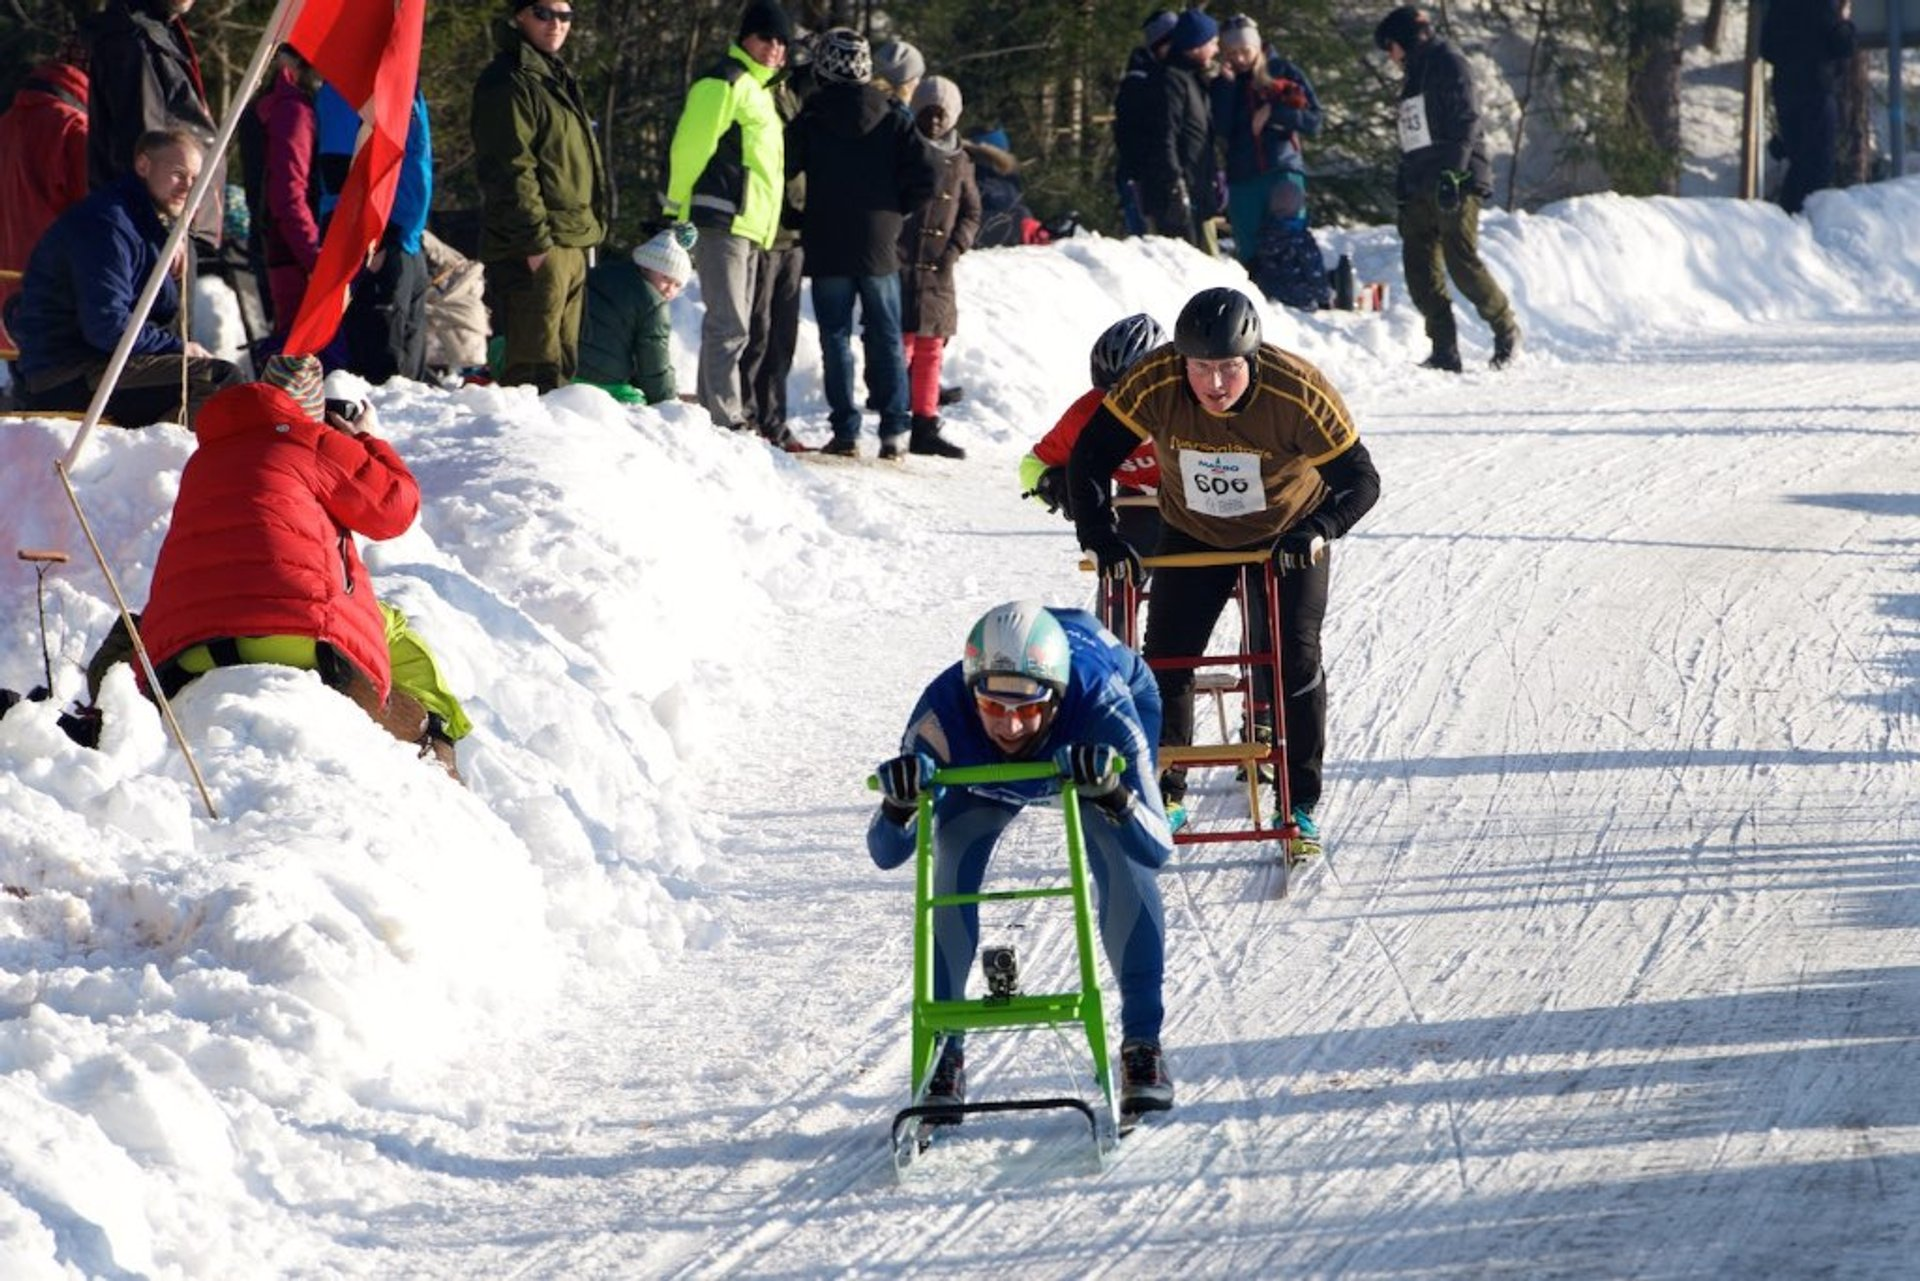 Kicksled World Championship in Norway - Best Season 2019